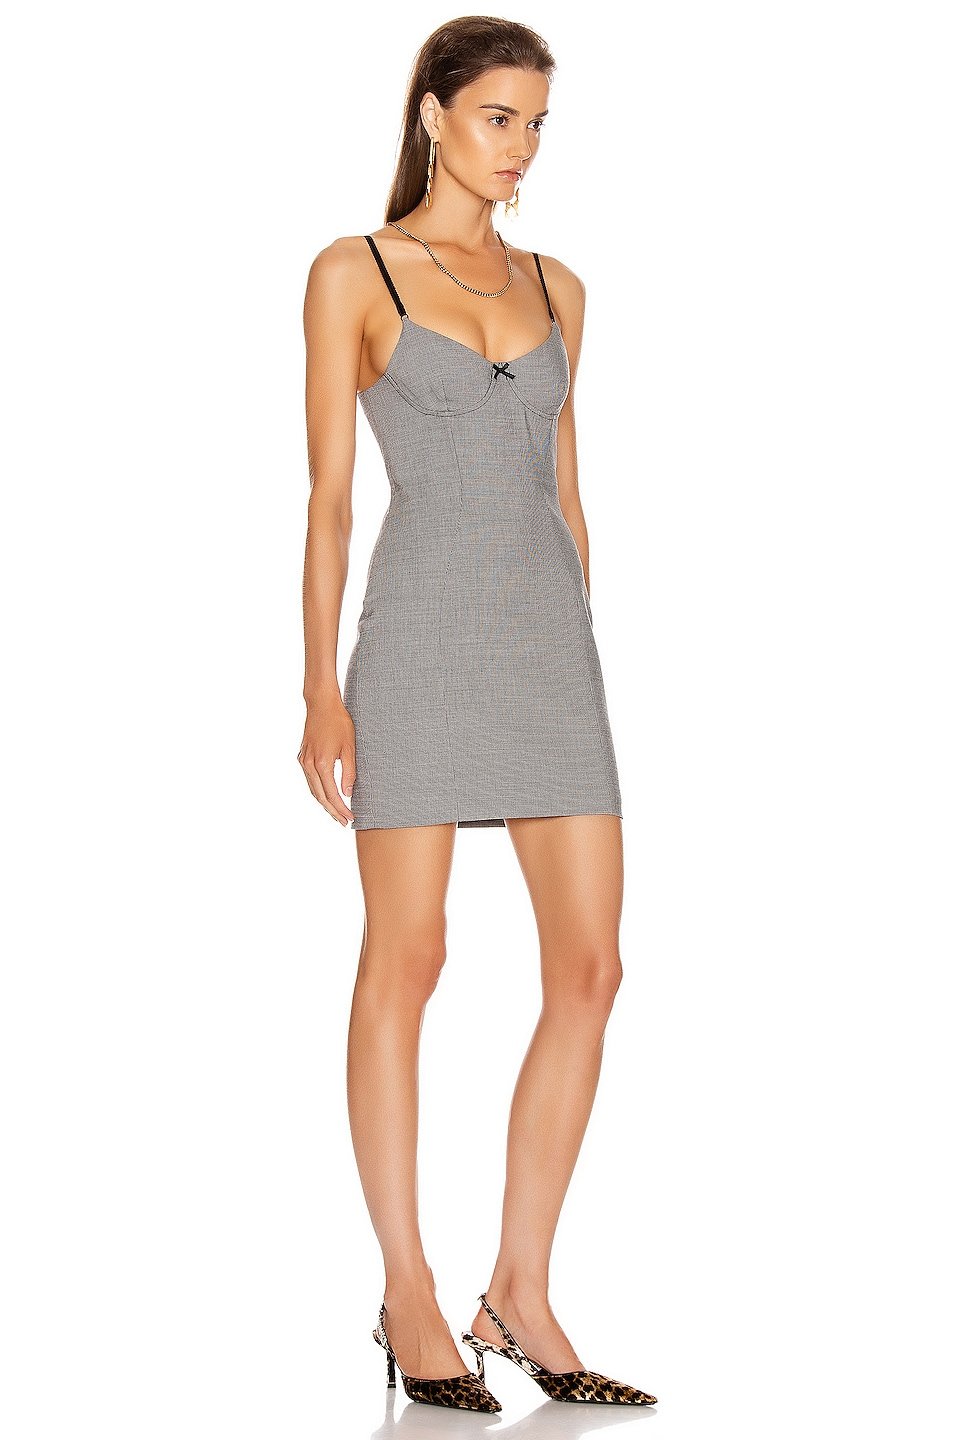 Image 2 of Alexander Wang Fitted Dress in Black & White Houndstooth